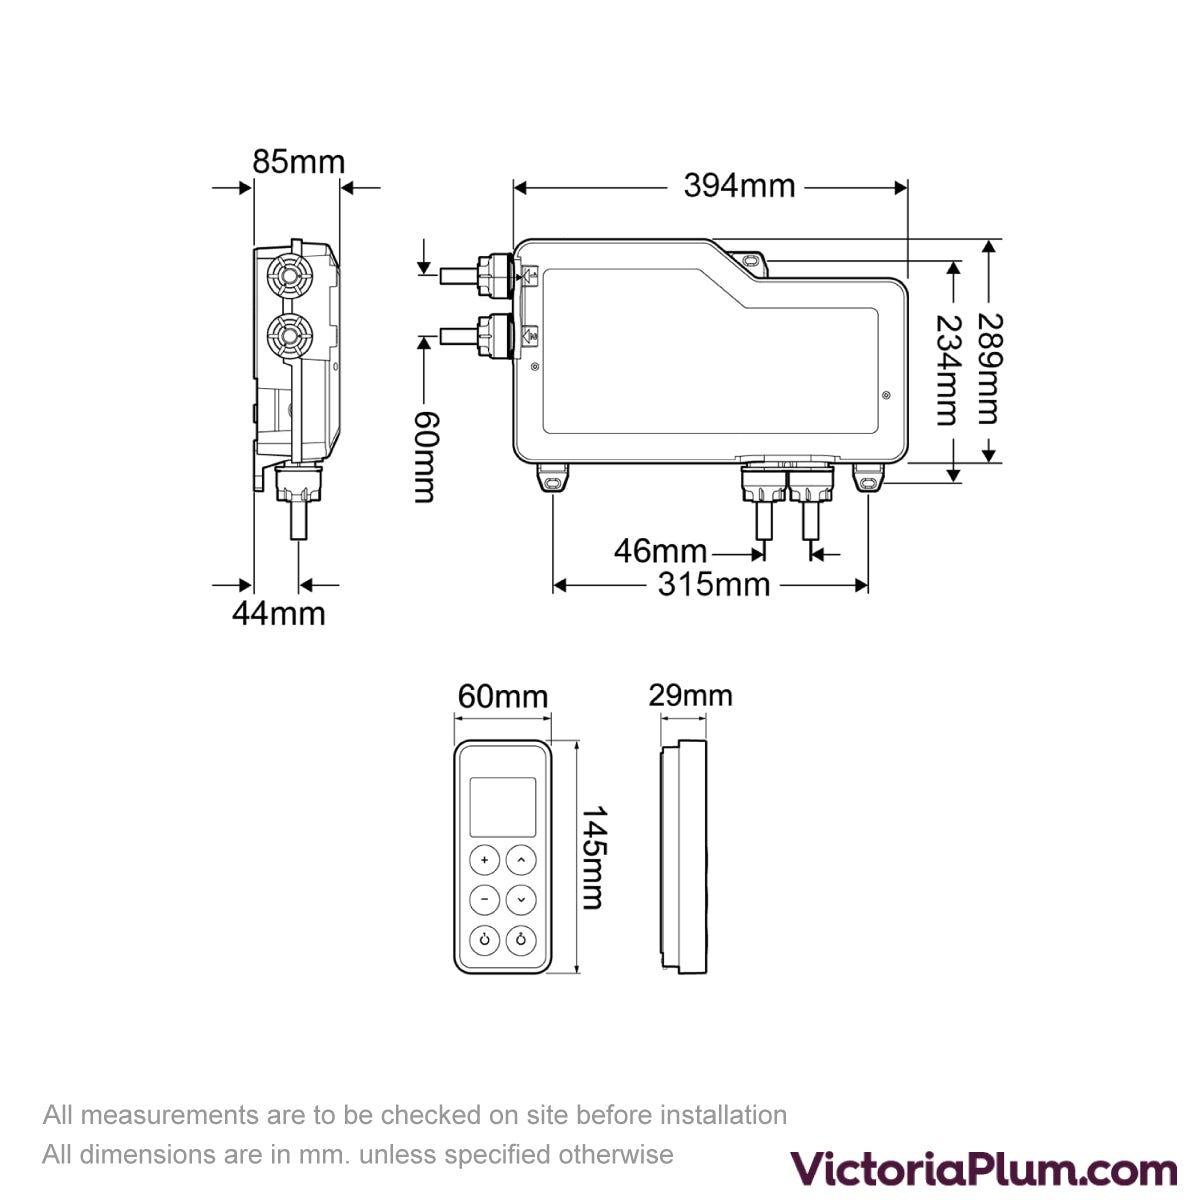 Dimensions for Mira Vision dual digital shower valve pumped